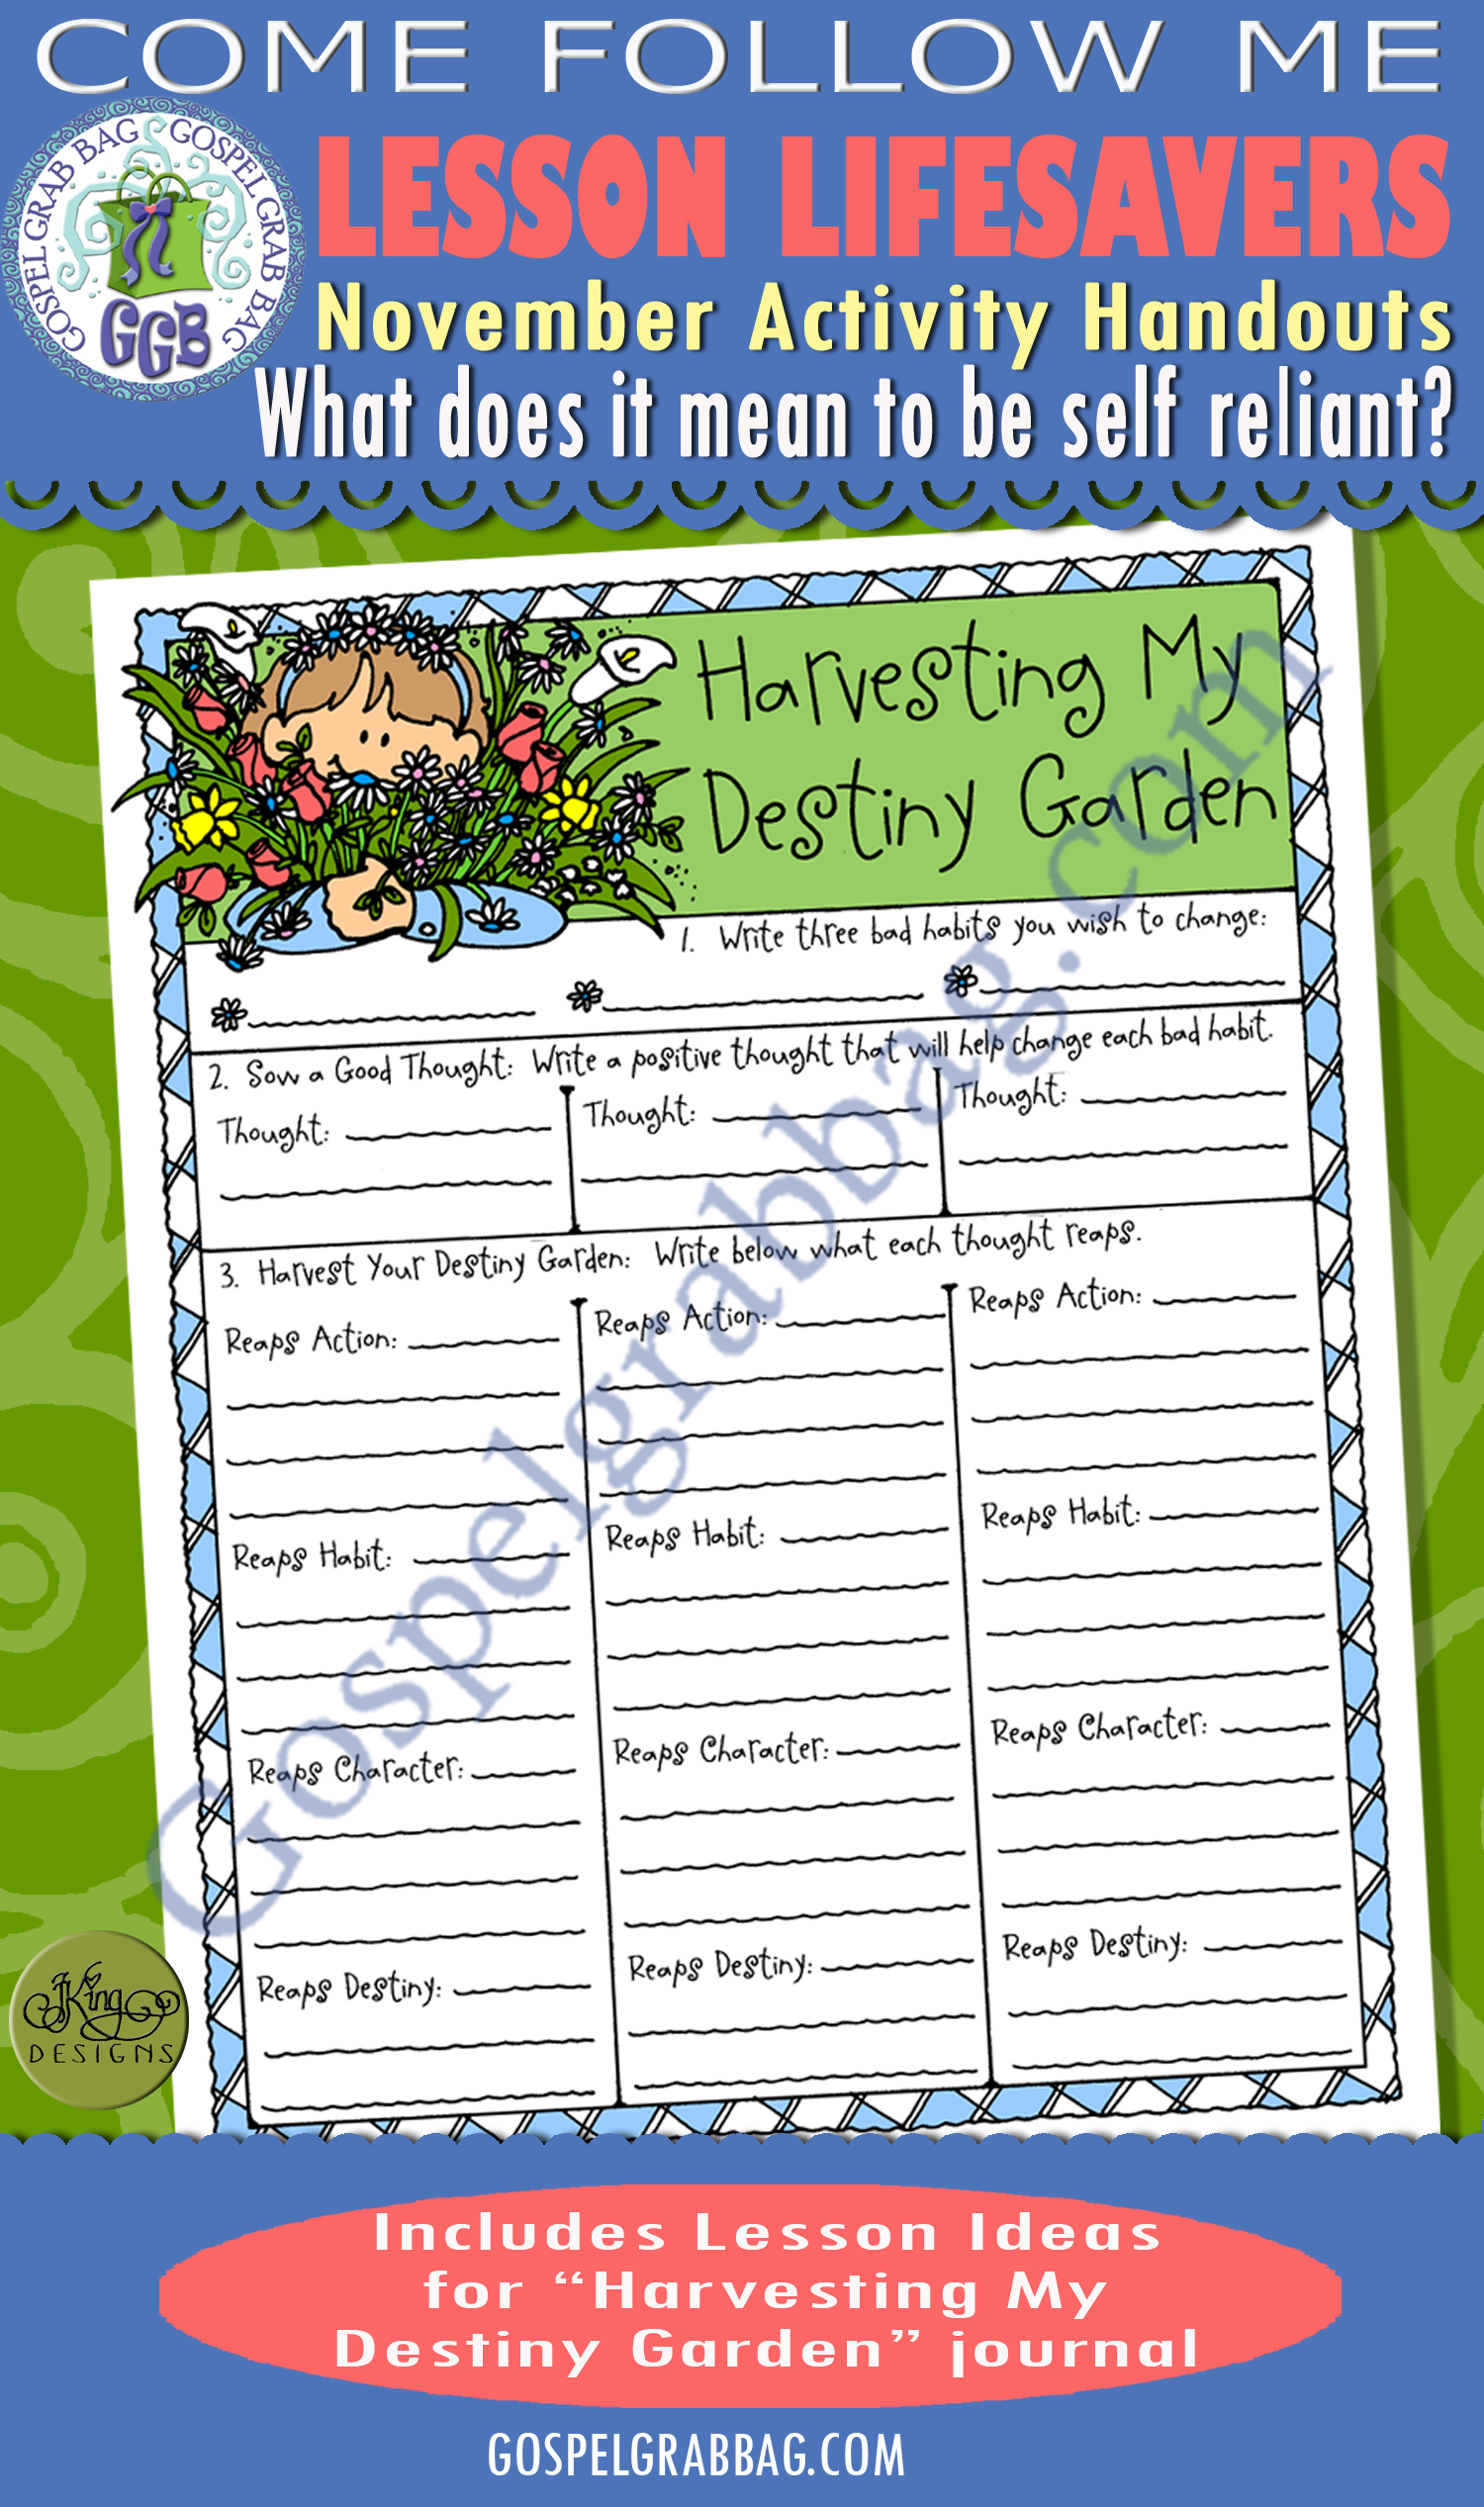 $1.75 or BUNDLE: Come Follow Me November Lesson: What does it mean to be self-reliant? ACTIVITY: Harvesting Myk Destiny Garden habit changer, LDS printables, GospelGrabBag.com